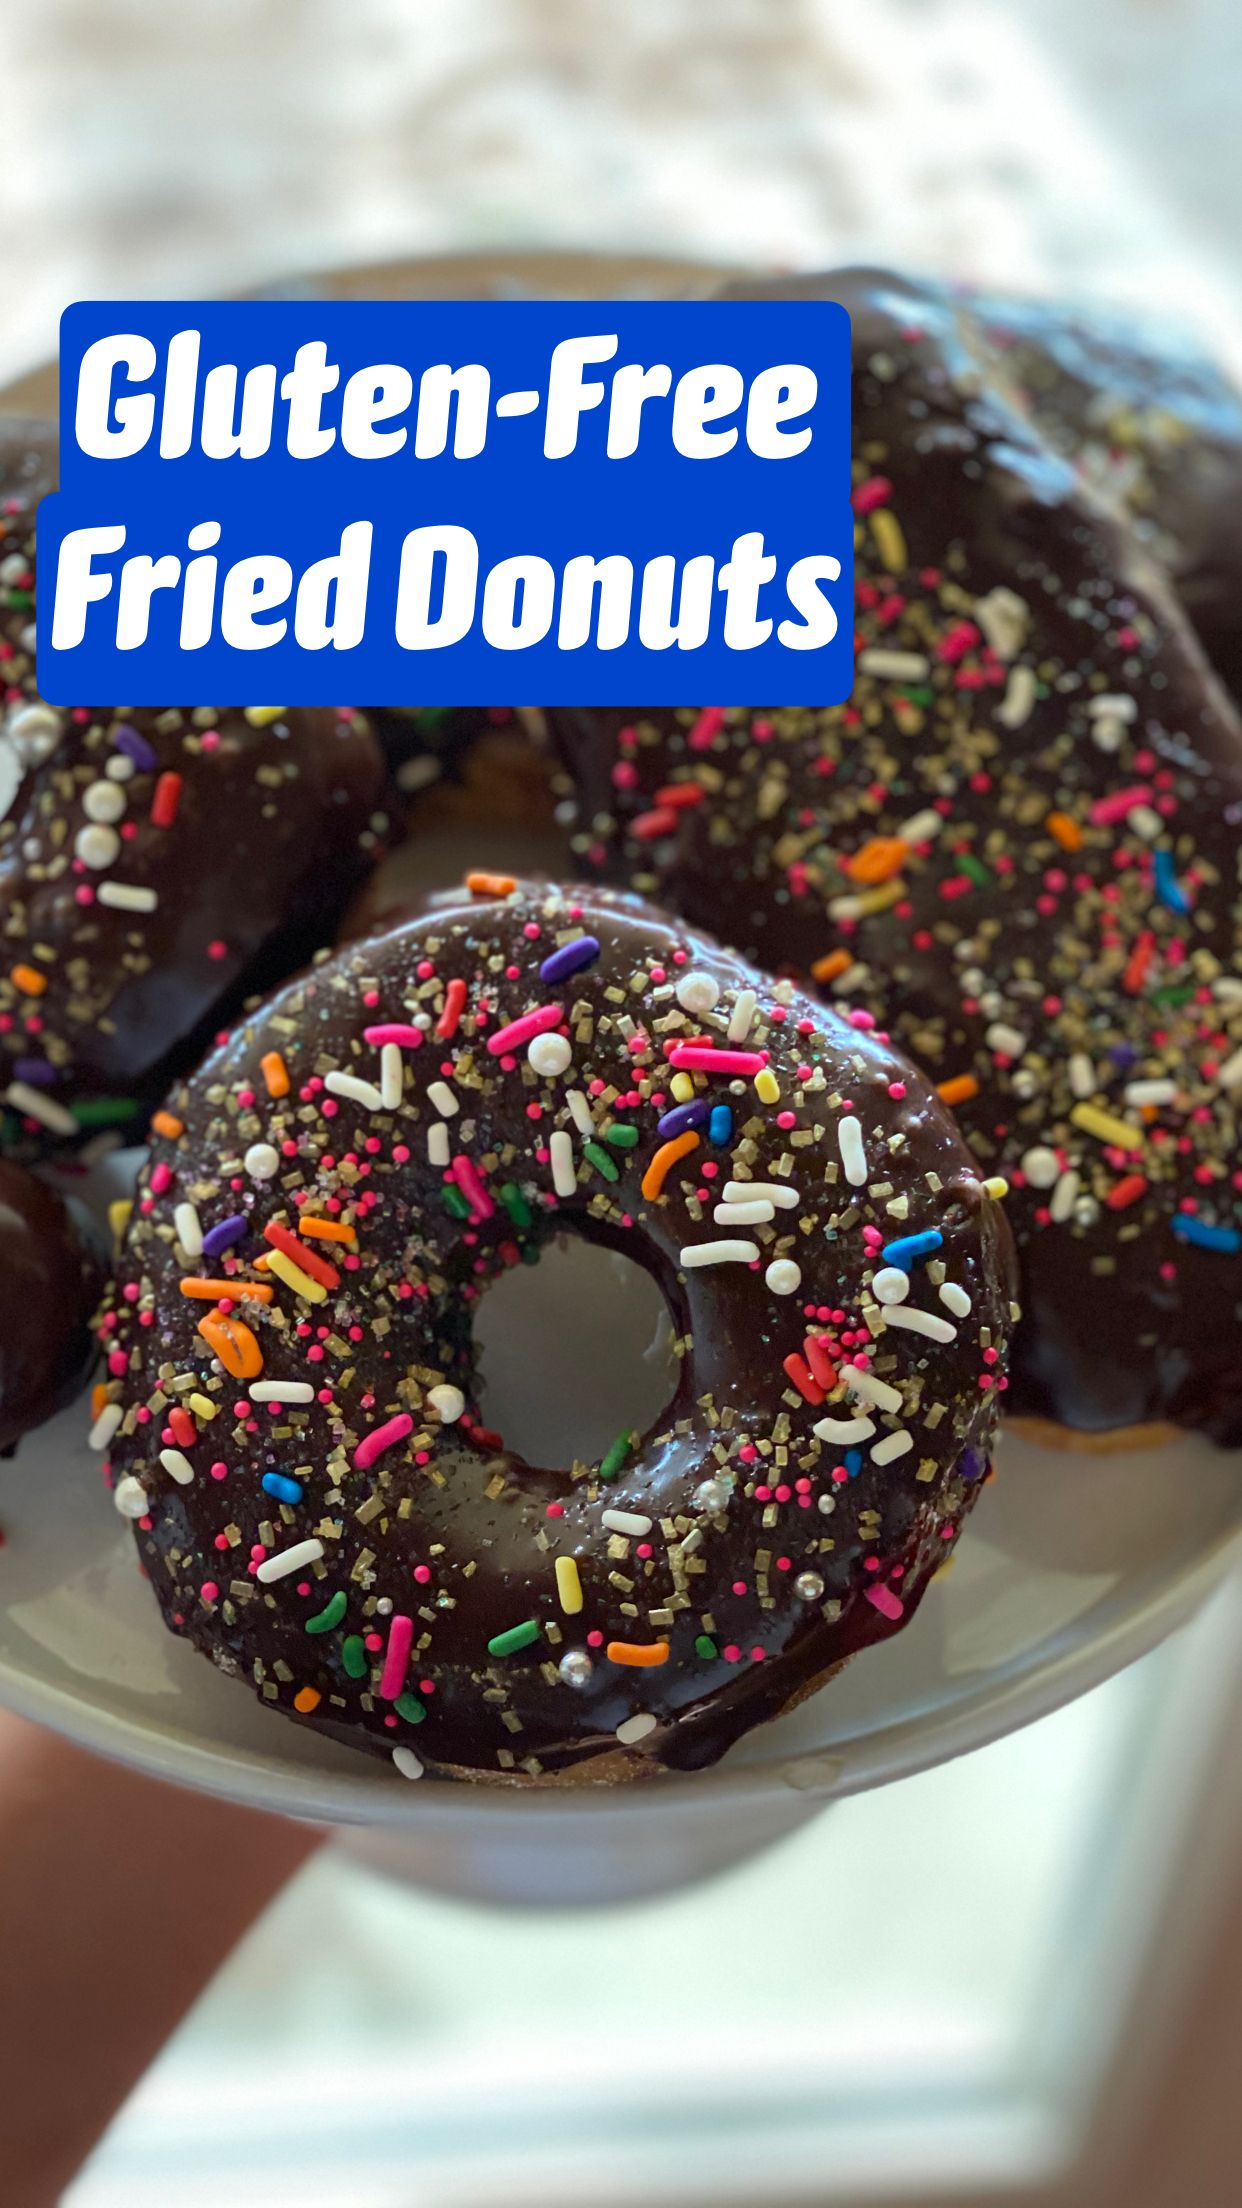 Gluten Free Fried Donuts This Vivacious Life Chandice Probst